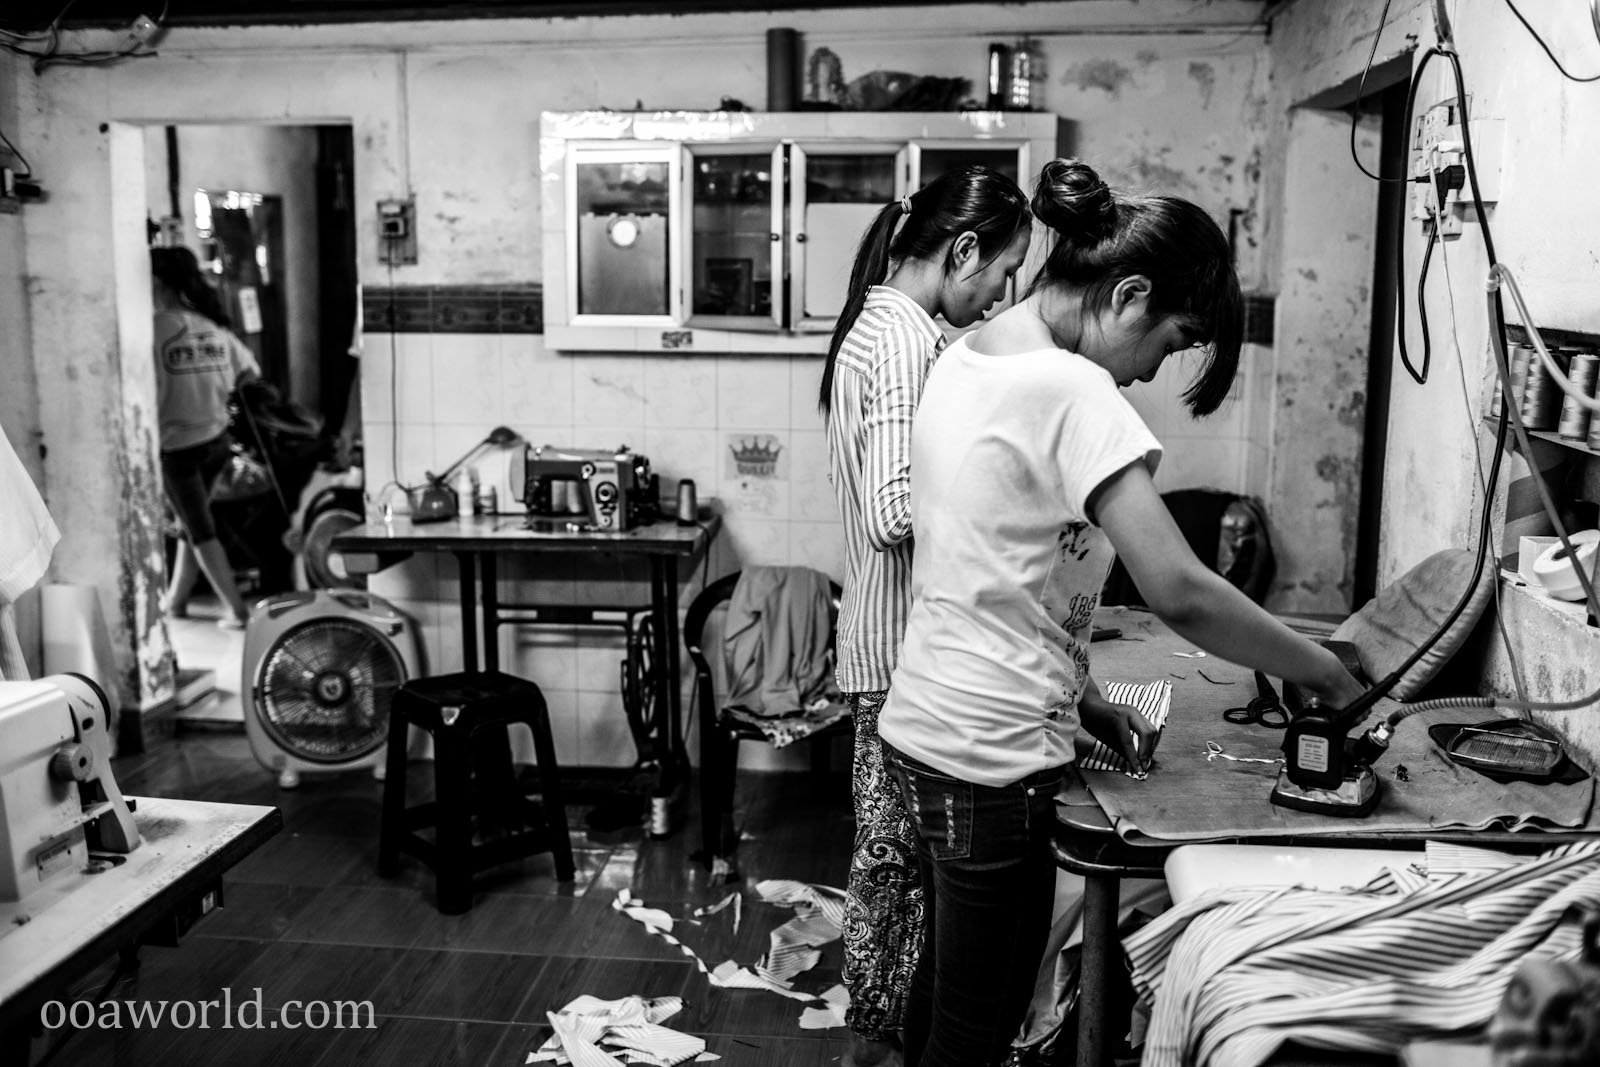 Tailored Suits Hoi An Vietnam Sweat Shop Photo Ooaworld